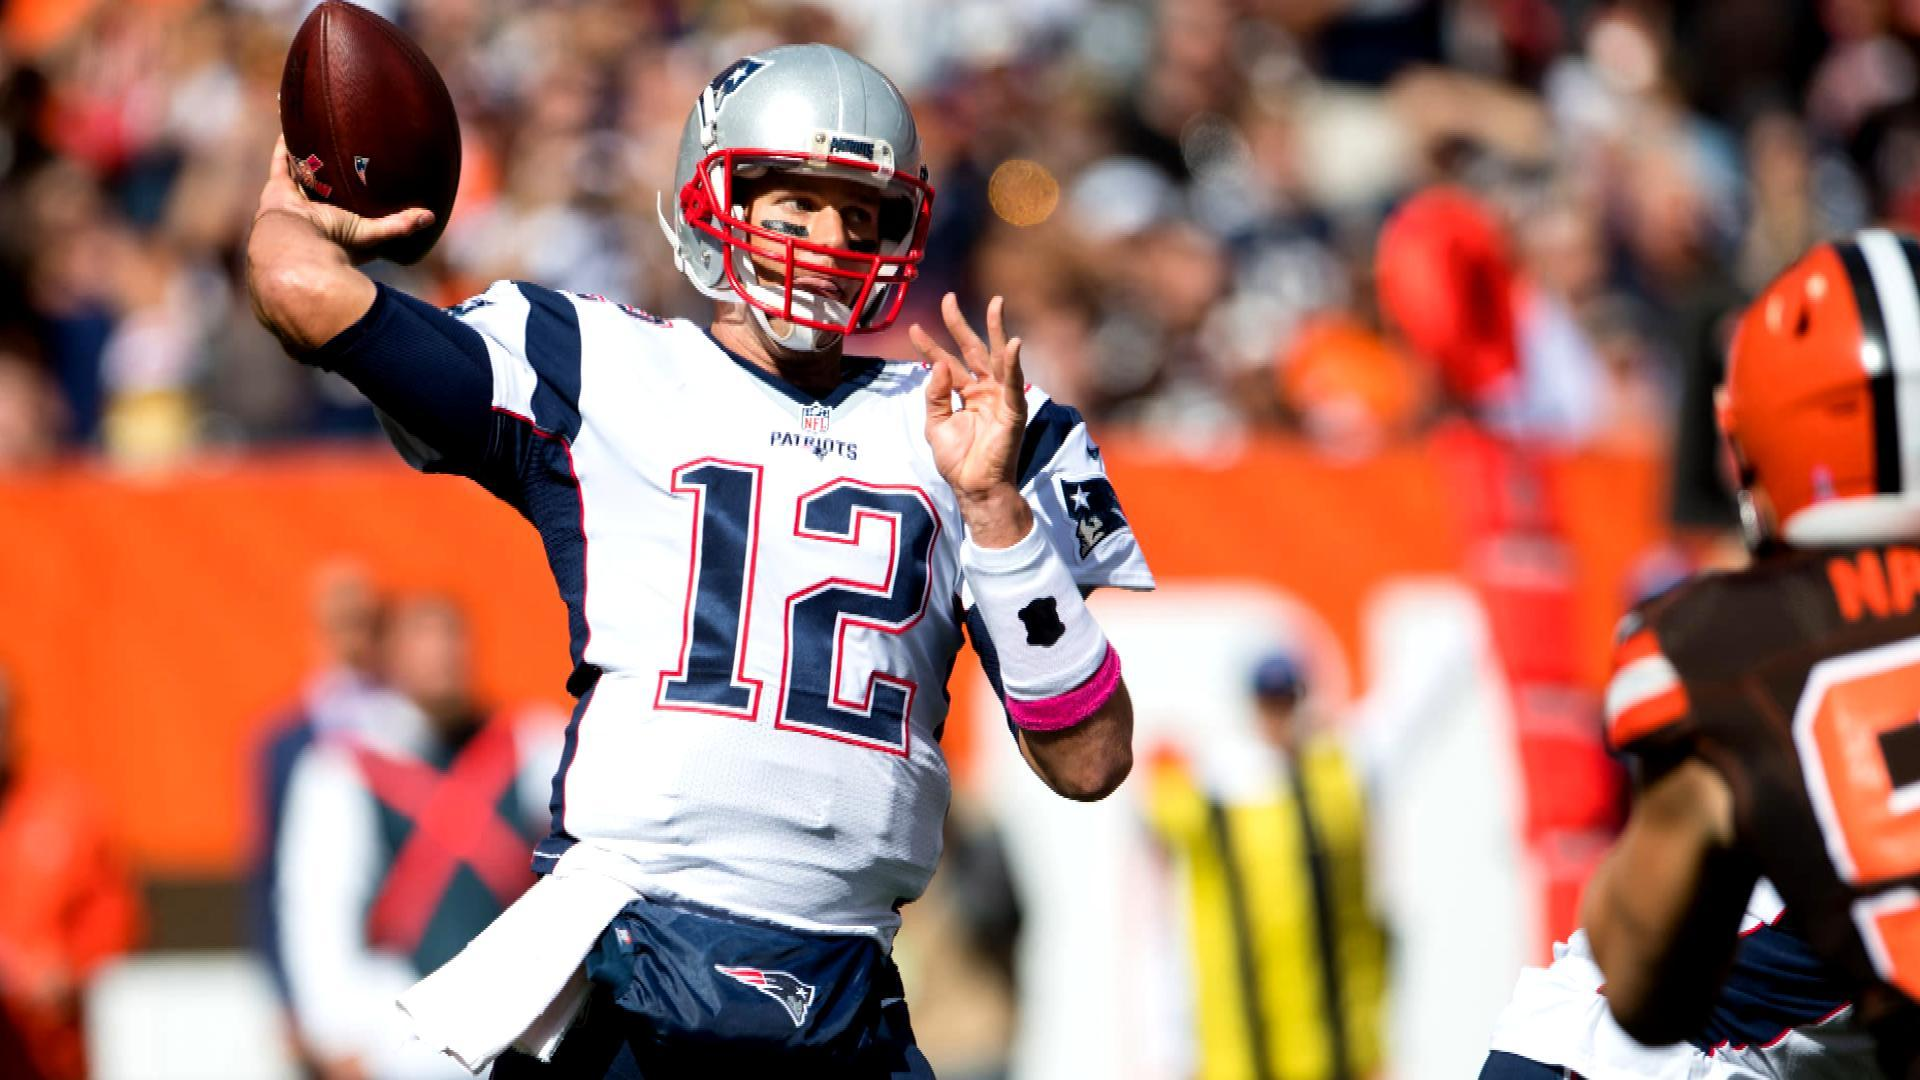 tom brady spends time with throwing coach during playoff - HD1920×1080